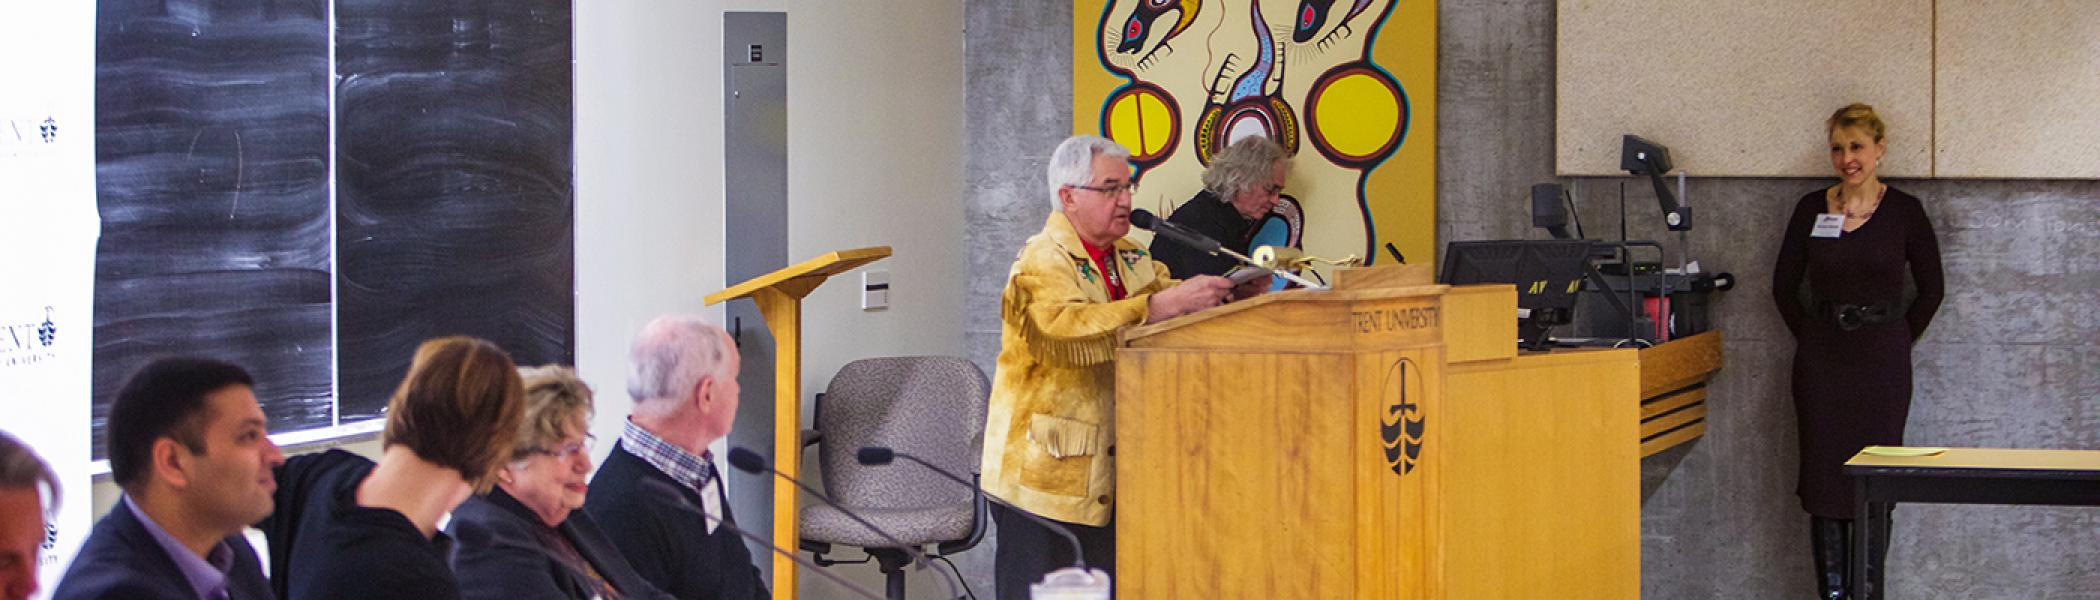 An indigenous professor standing at a podium talking to an auditorium of people